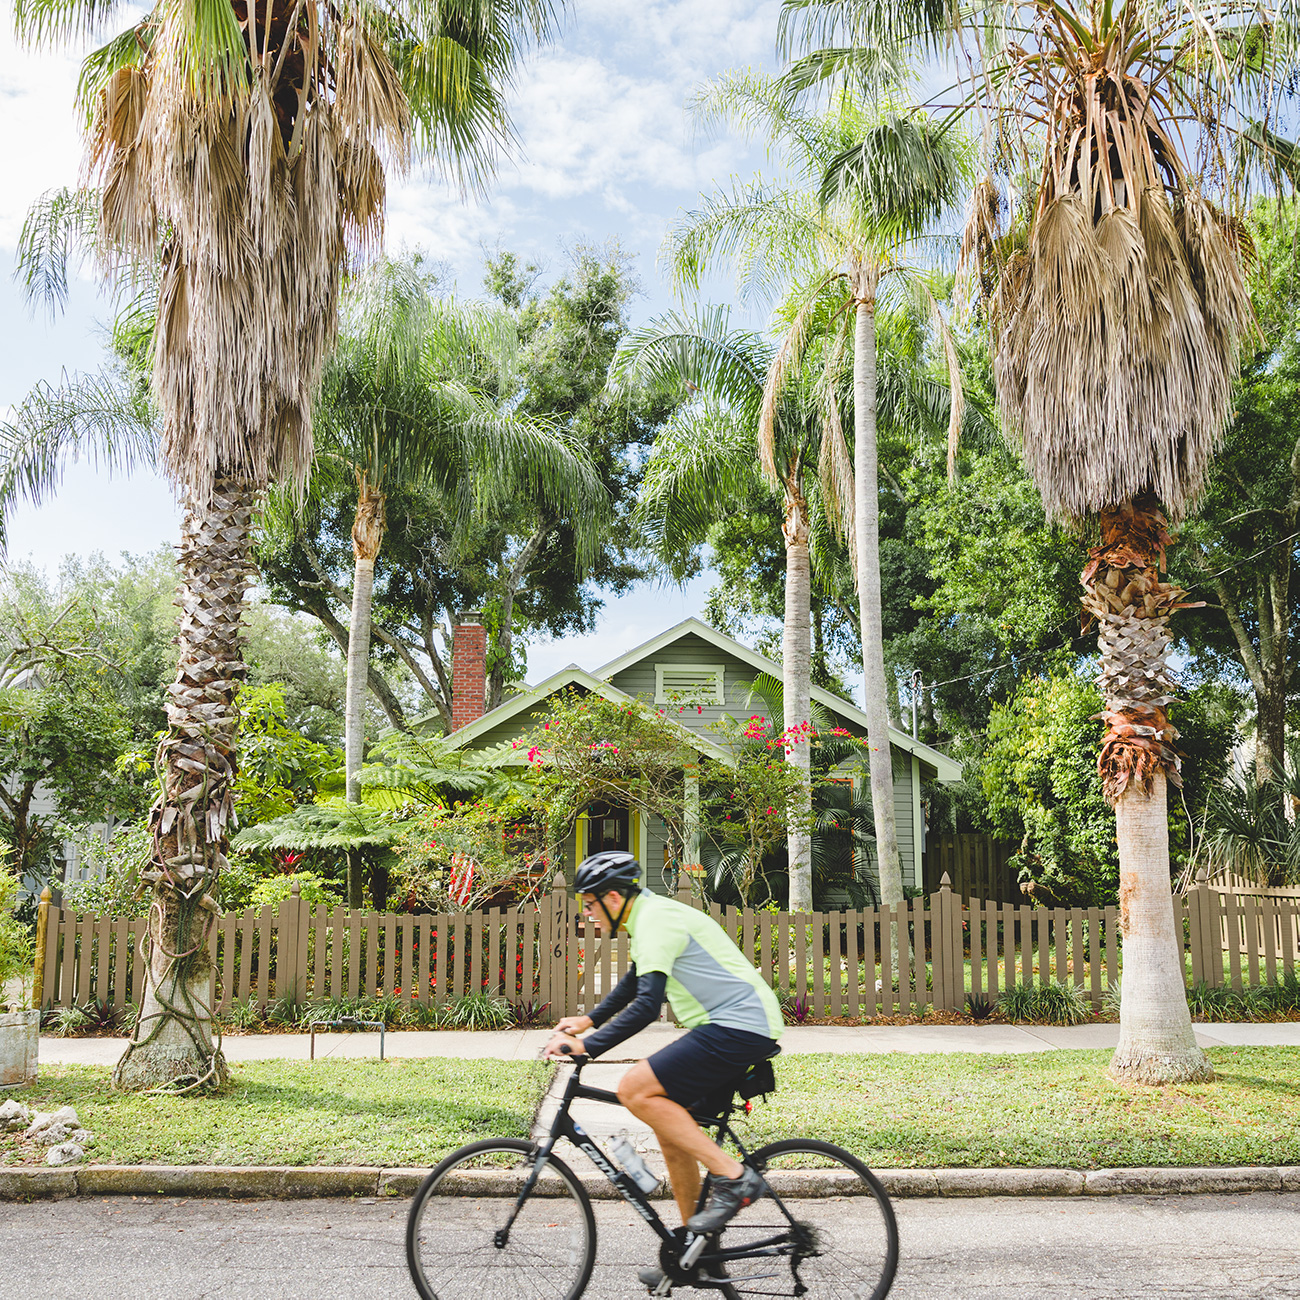 Newer developments in downtown Sarasota have been thoughtfully planned around quaint residential neighborhoods like Laurel Park, above, to preserve their historic appeal.